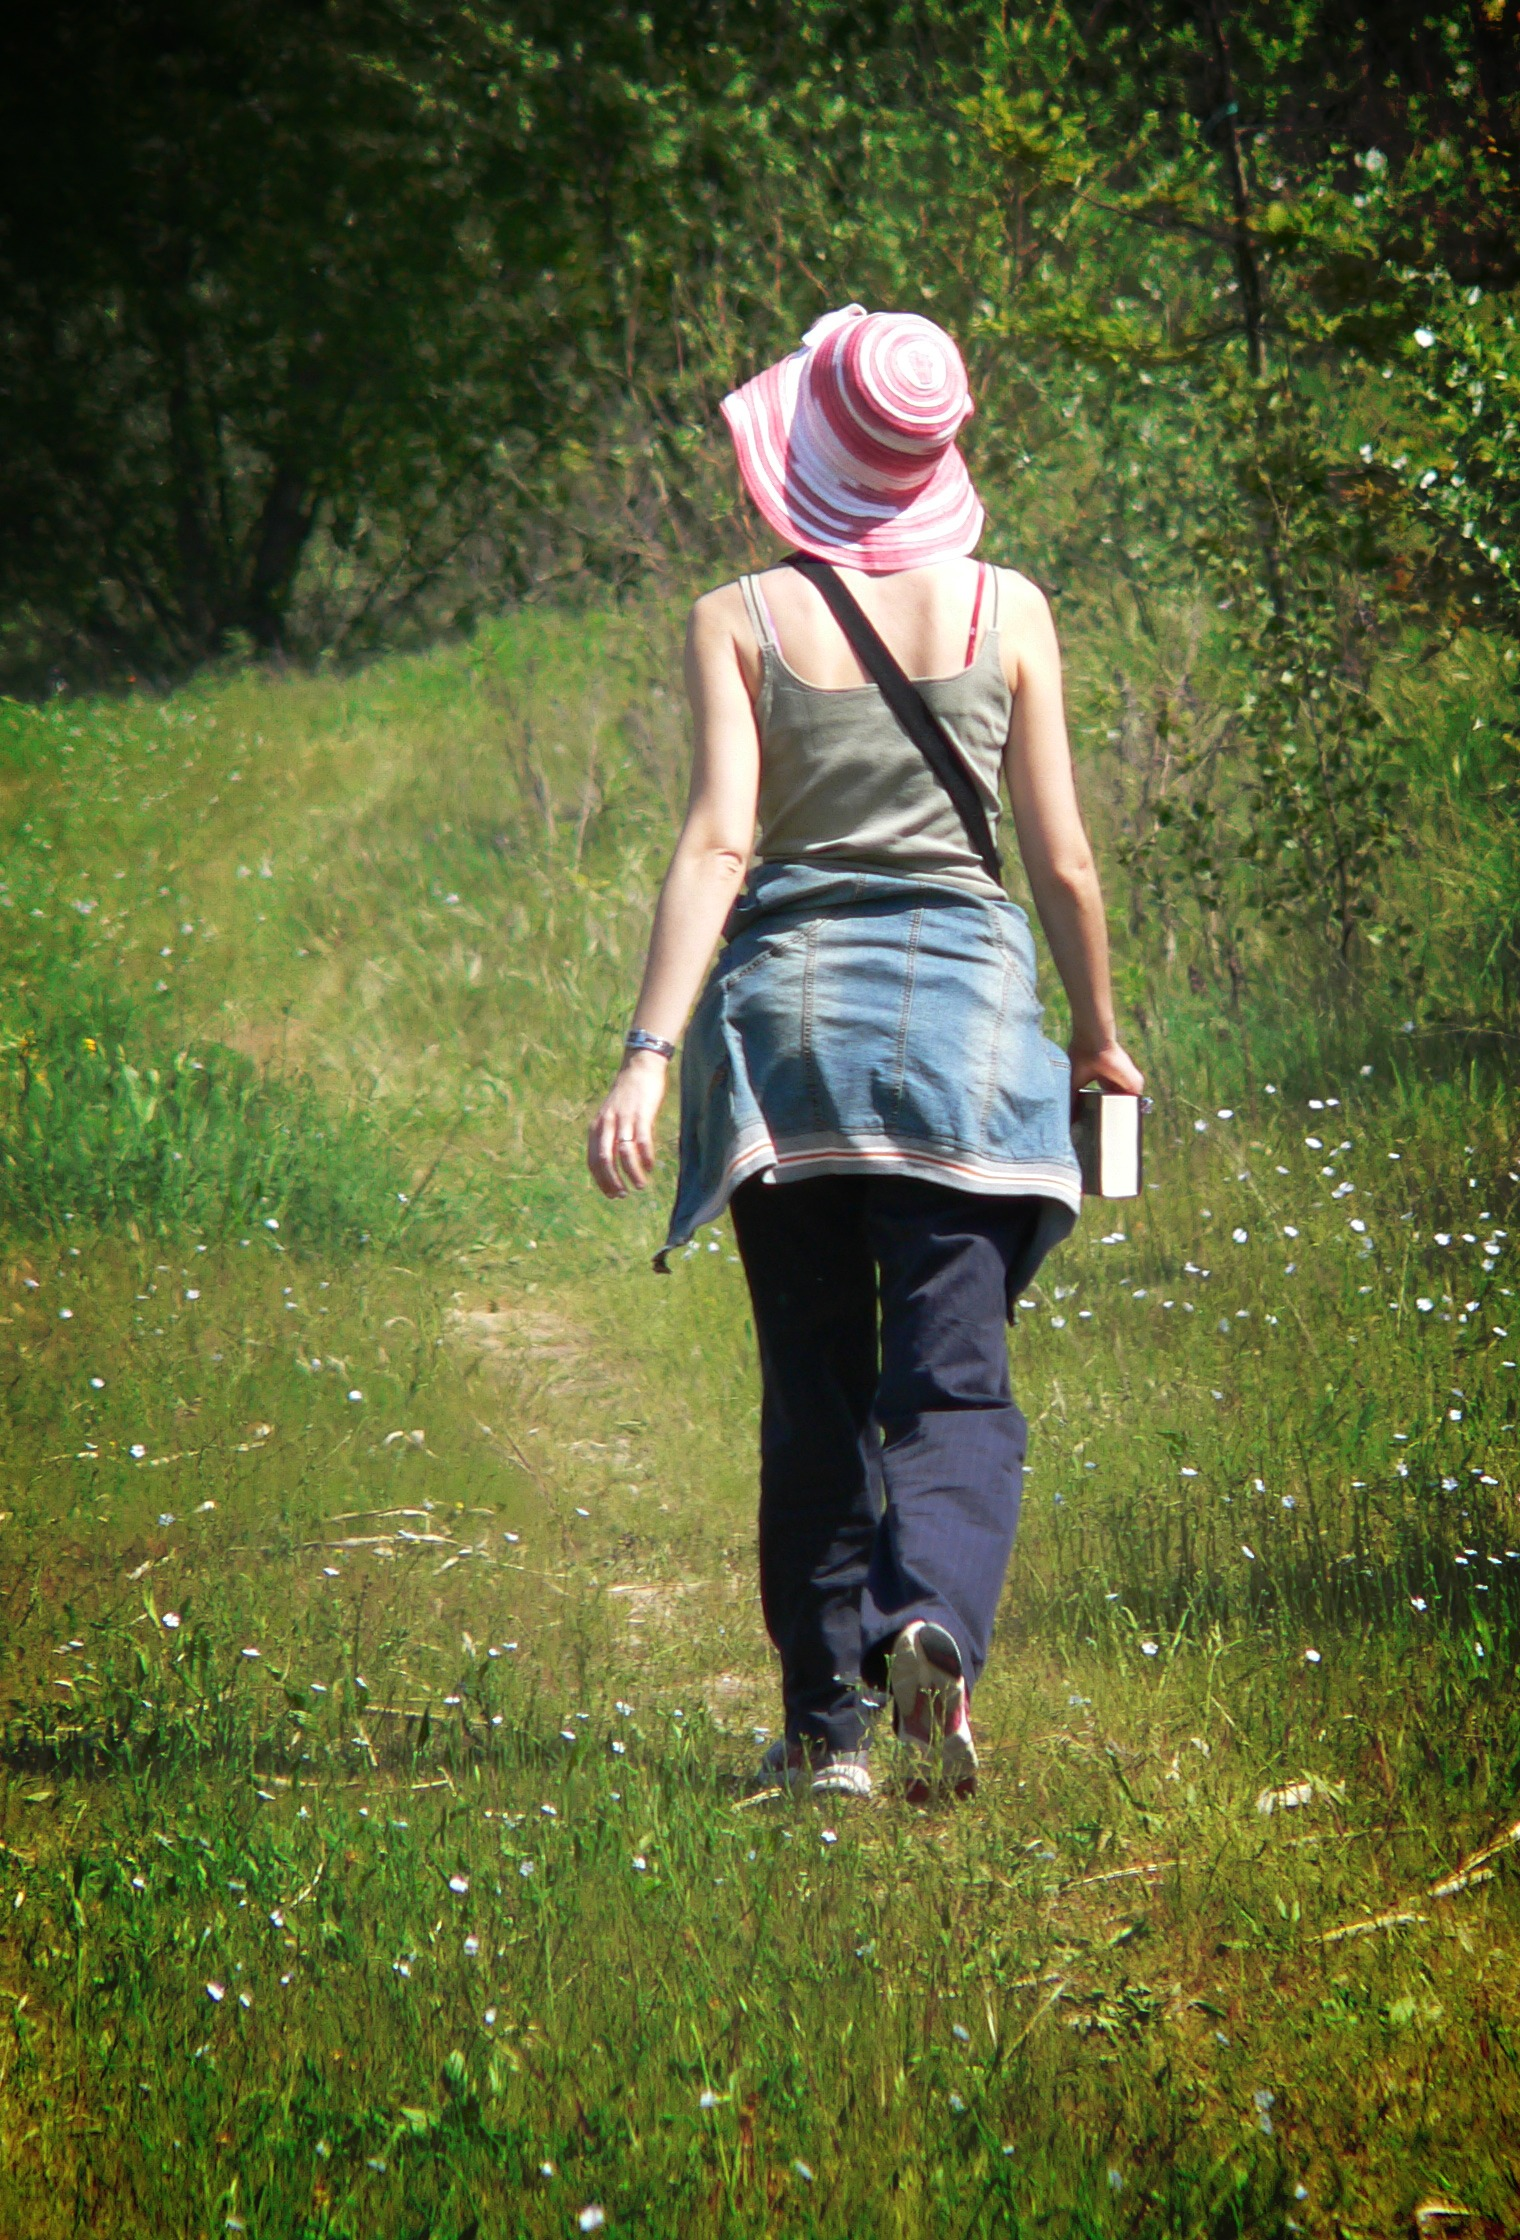 Walking Your Own Path